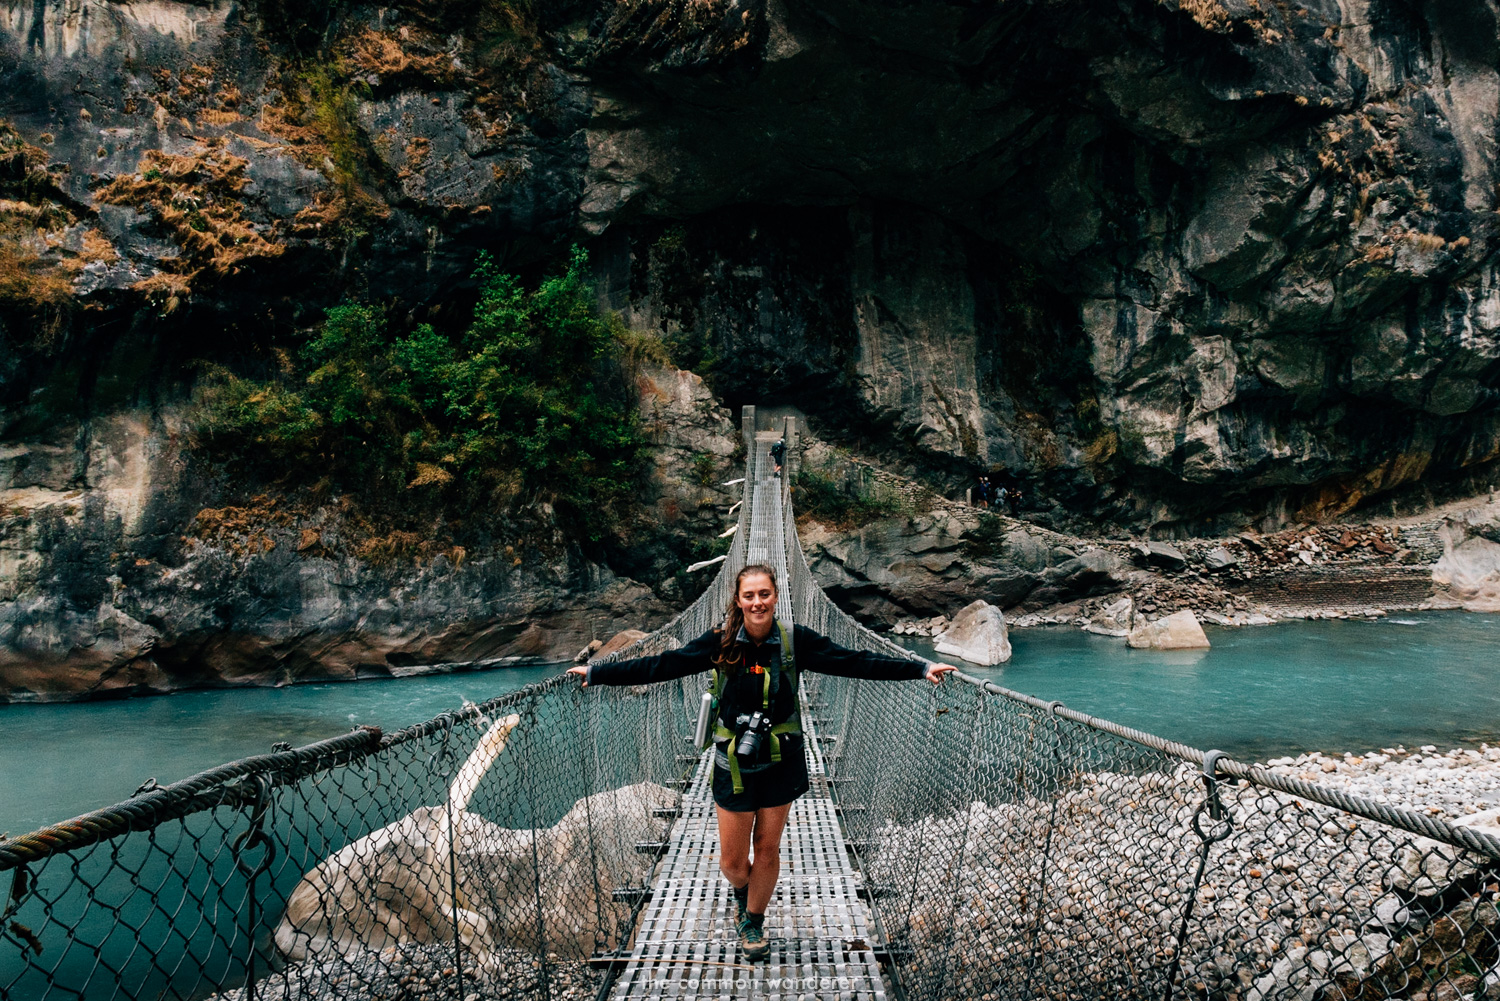 A suspension bridge on the Annapurna Circuit trek, Nepal